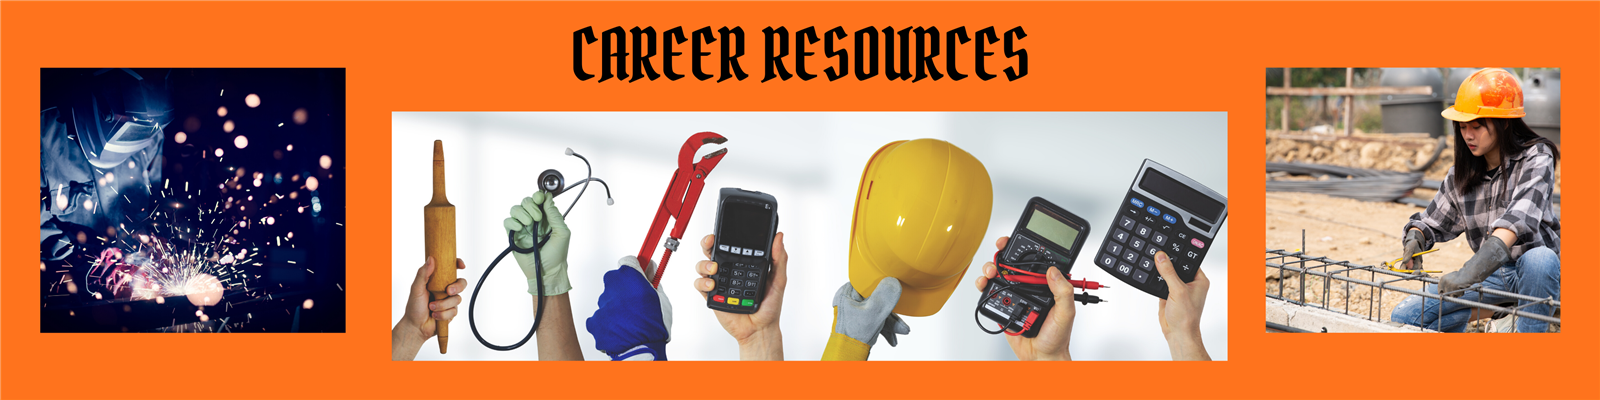 Career Resources Banner